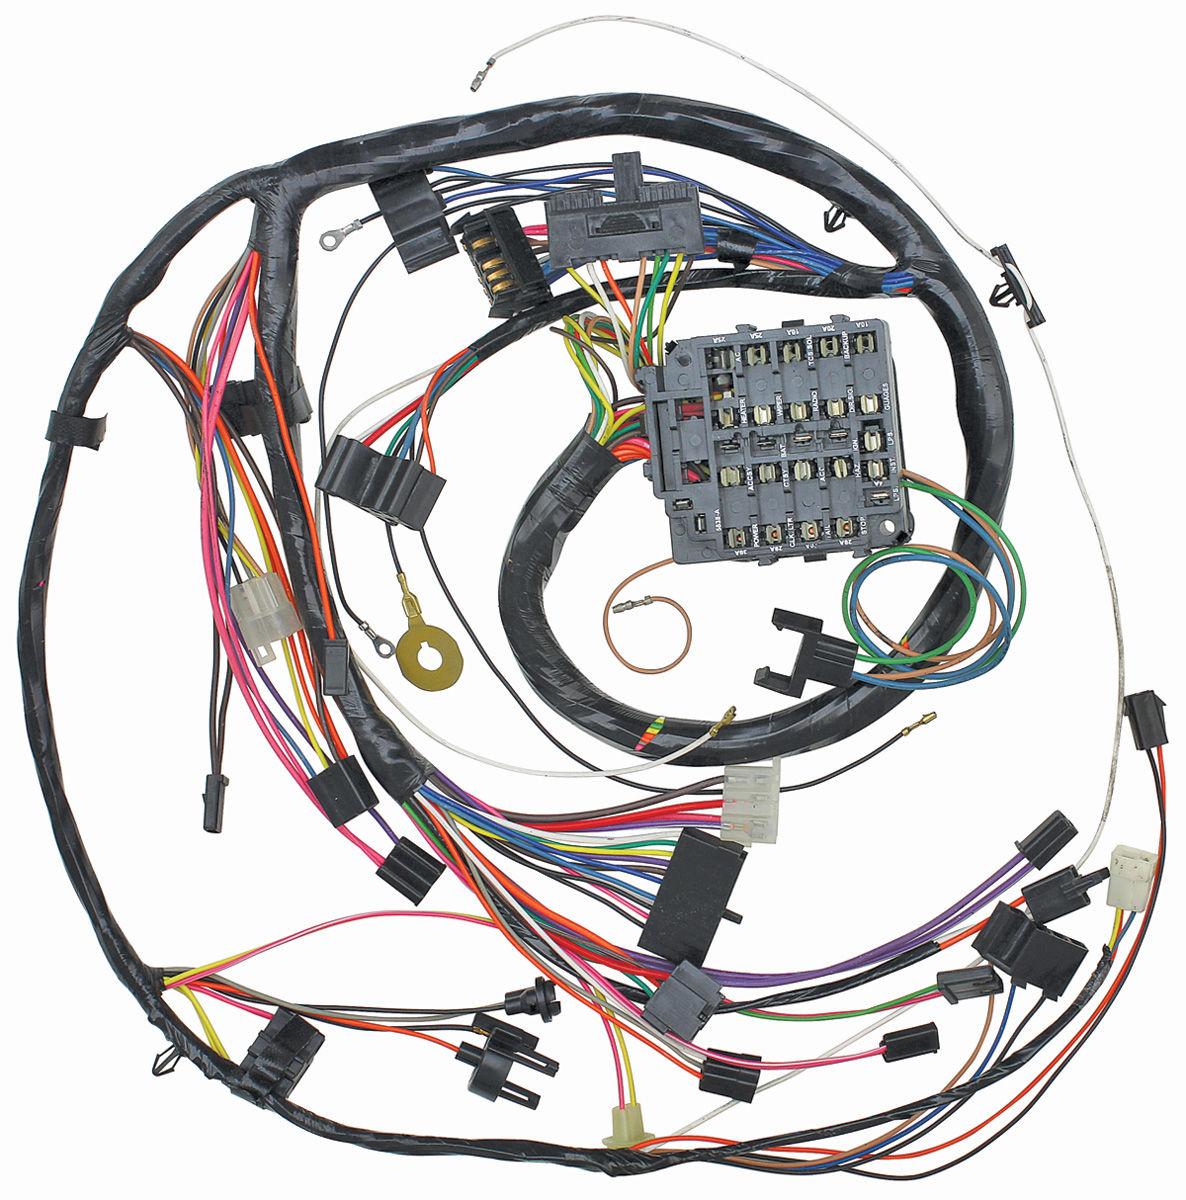 1972 Monte Carlo Fuse Box Wiring Library Dash Panel M H Instrument Harness Round 1973 1970